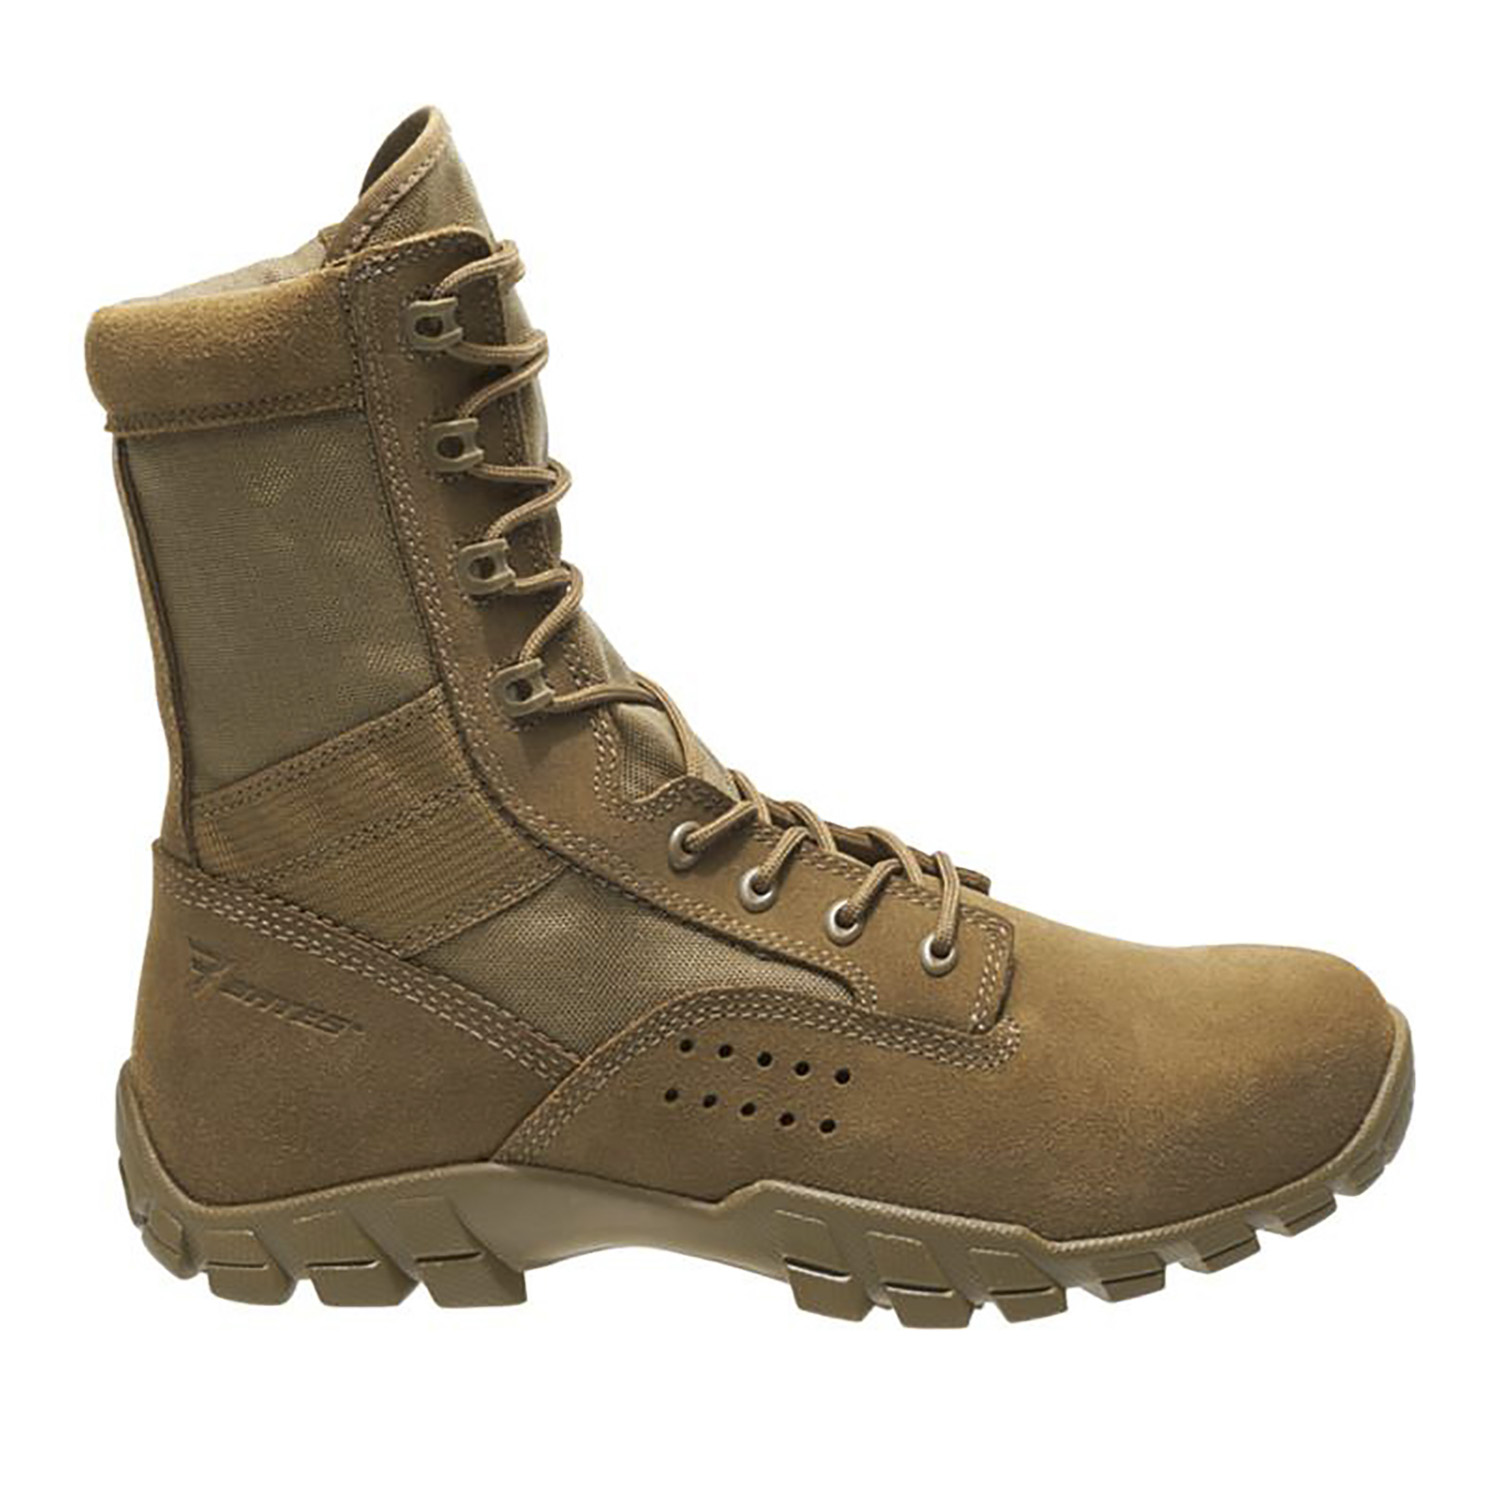 "Bates Cobra 8"" Hot Weather AR670-1 Jungle Boot (Coyote)"